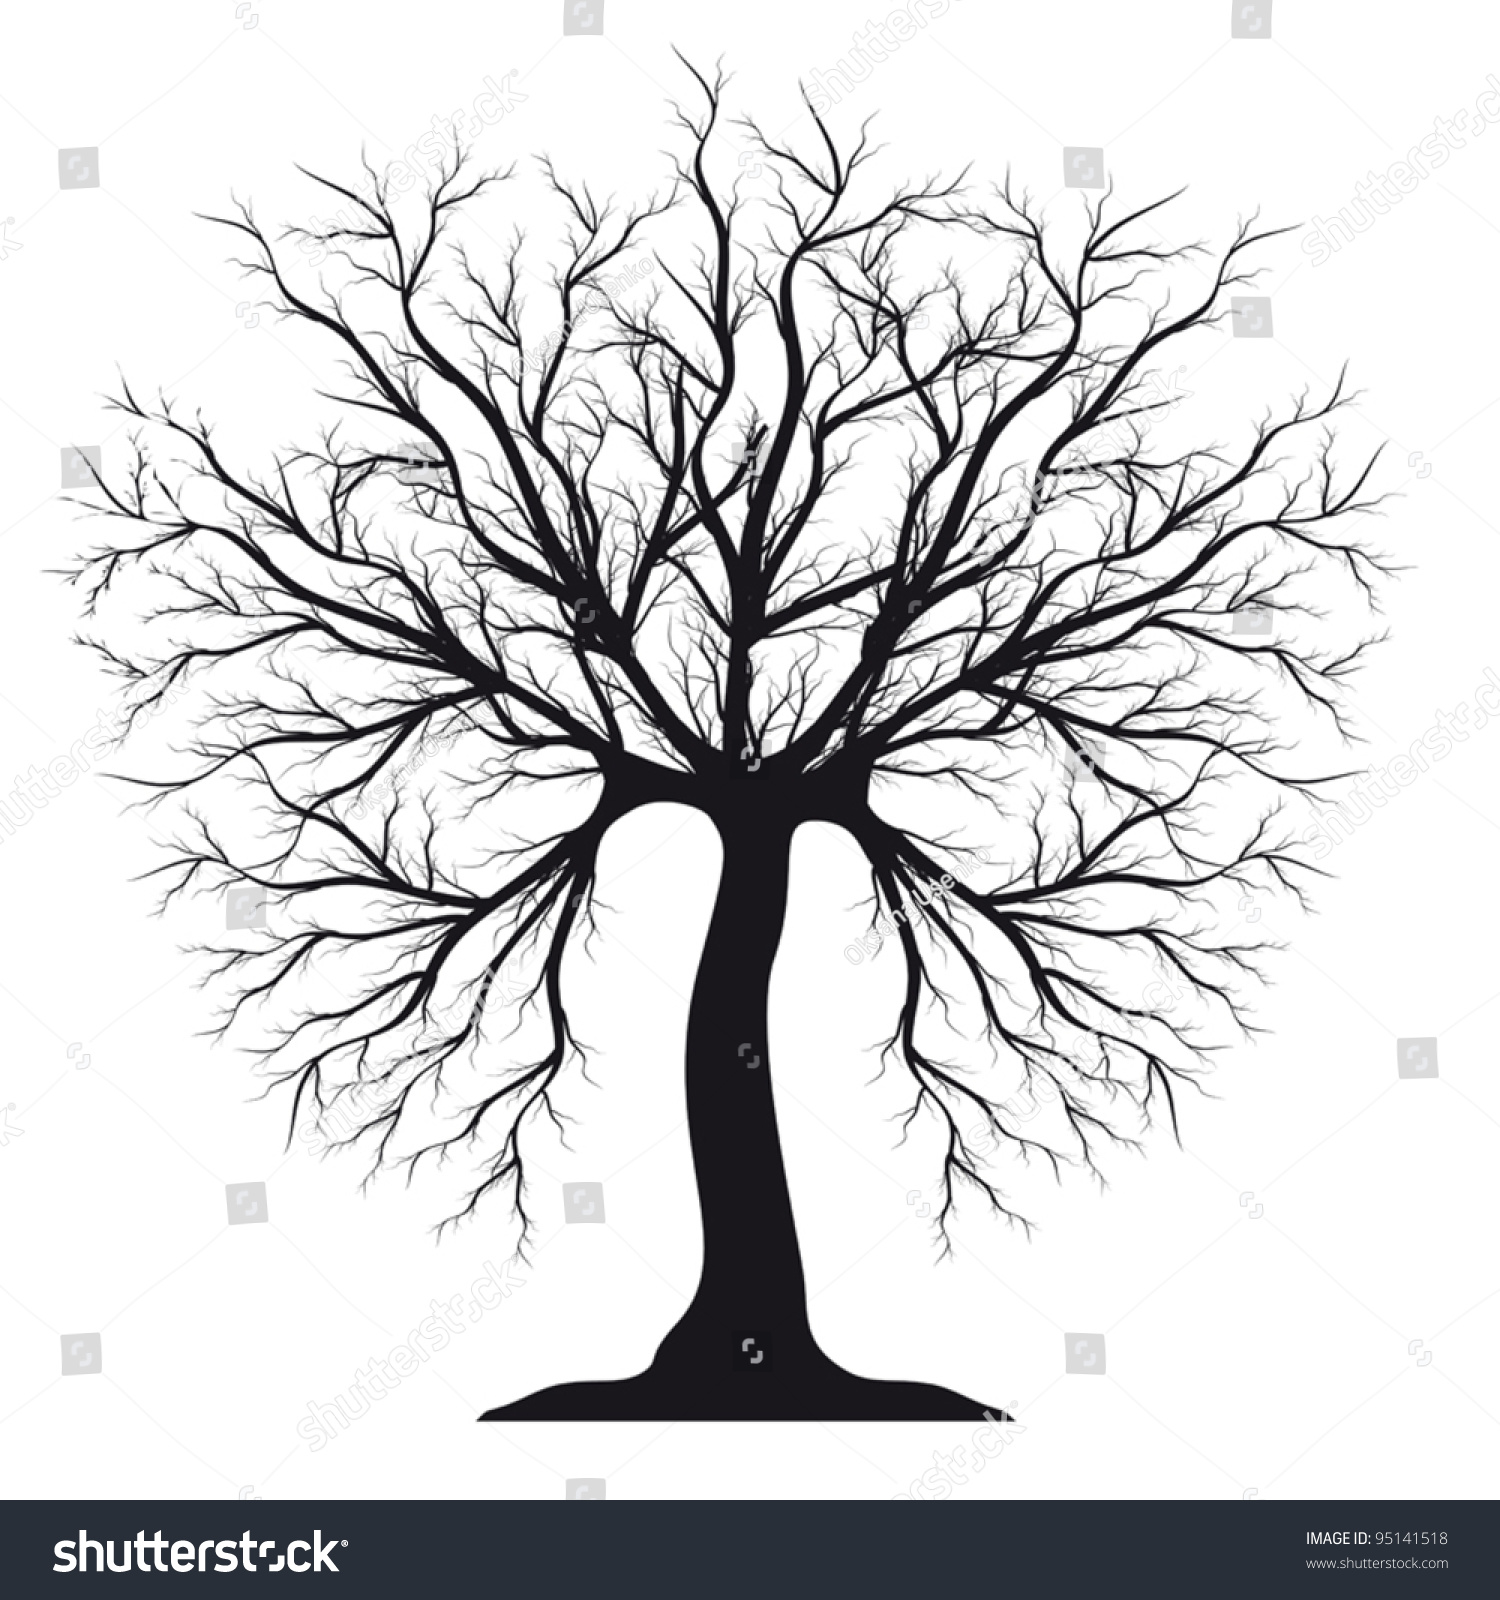 Black Silhouette Tree Without Leaves Stock Vector